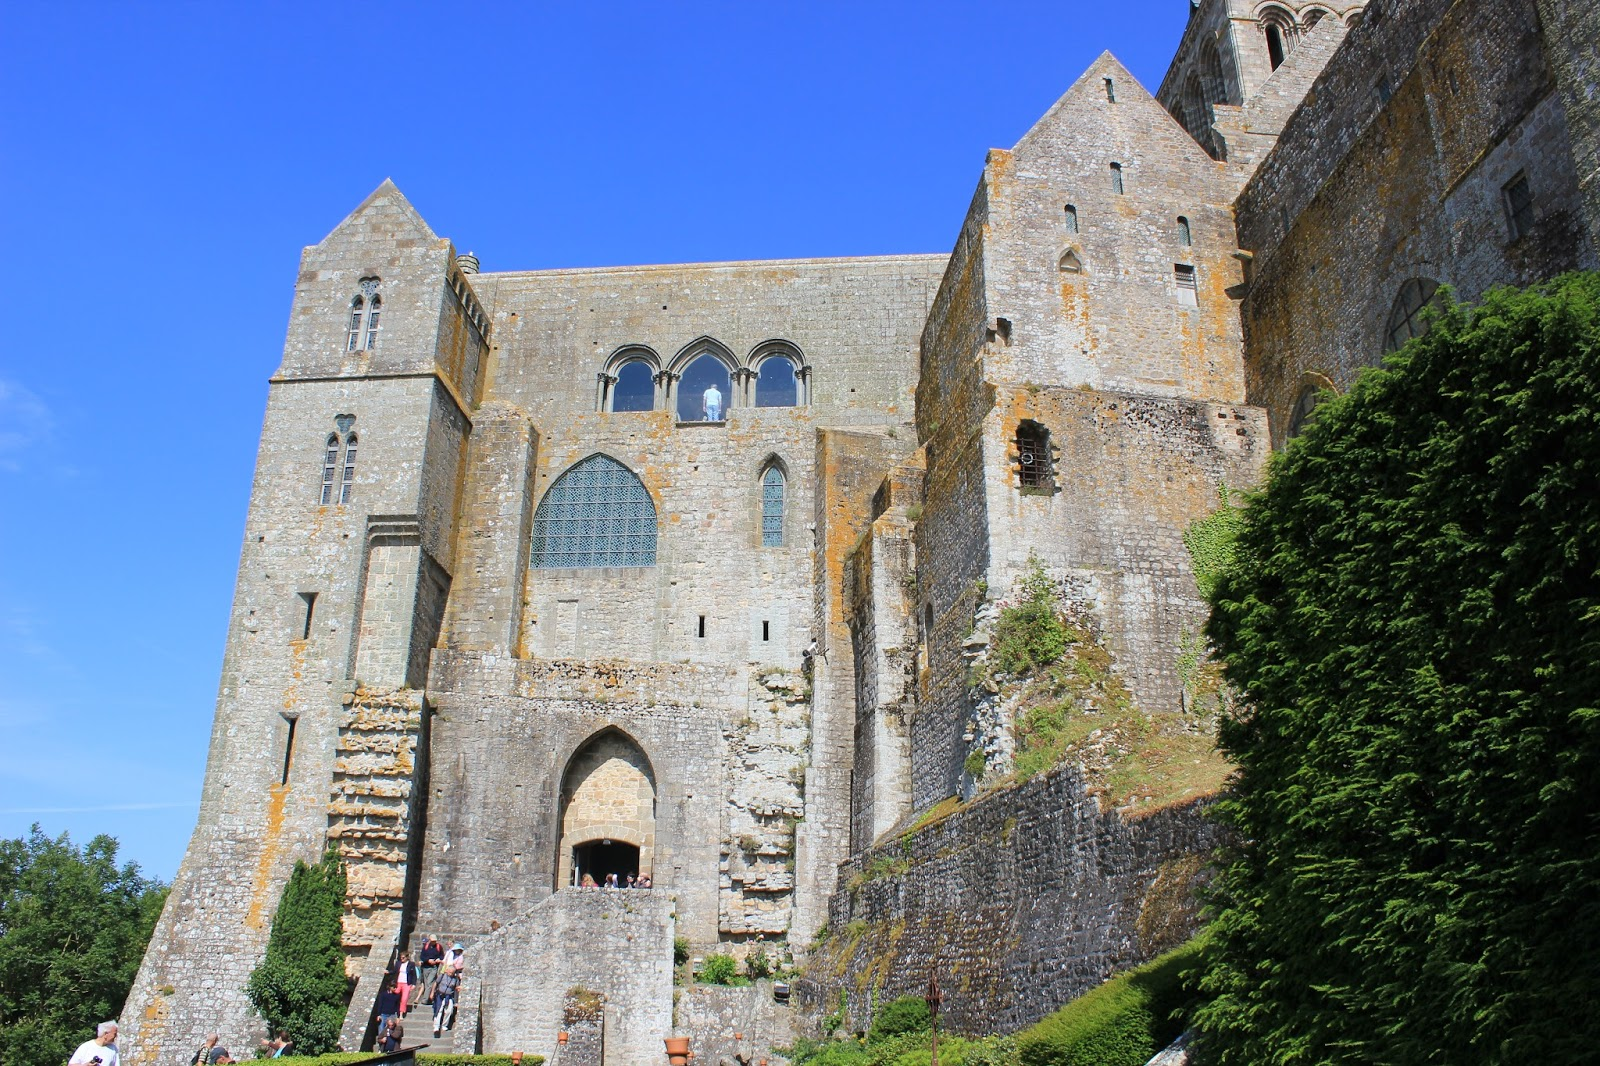 Le blog de robert steuckers mont saint michel juillet 2013 for Au jardin st michel pontorson